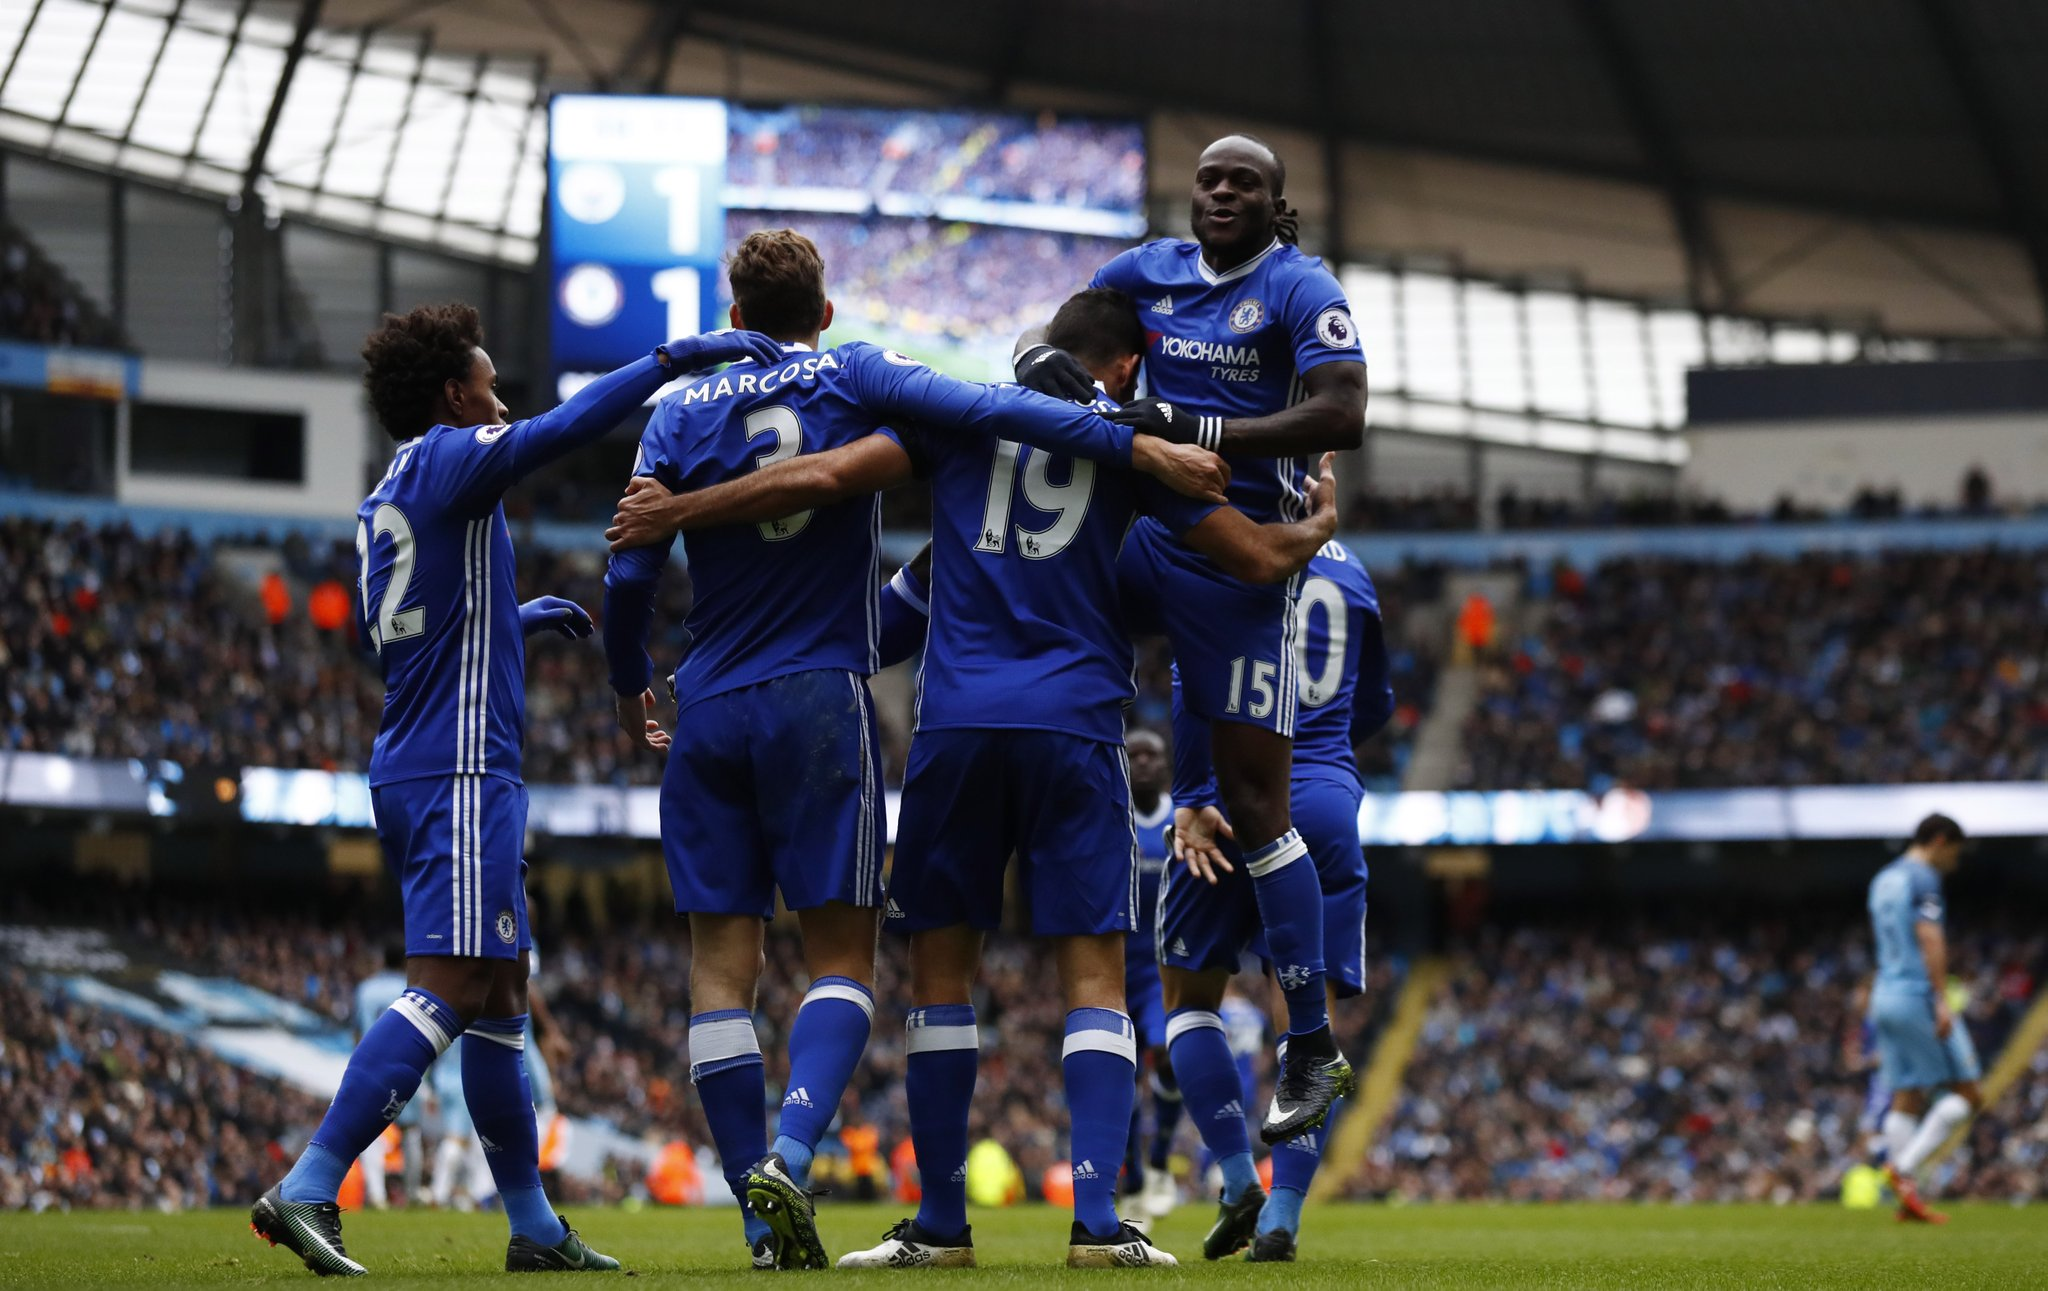 Moses Shines Again As Chelsea Outclass 9-Man City